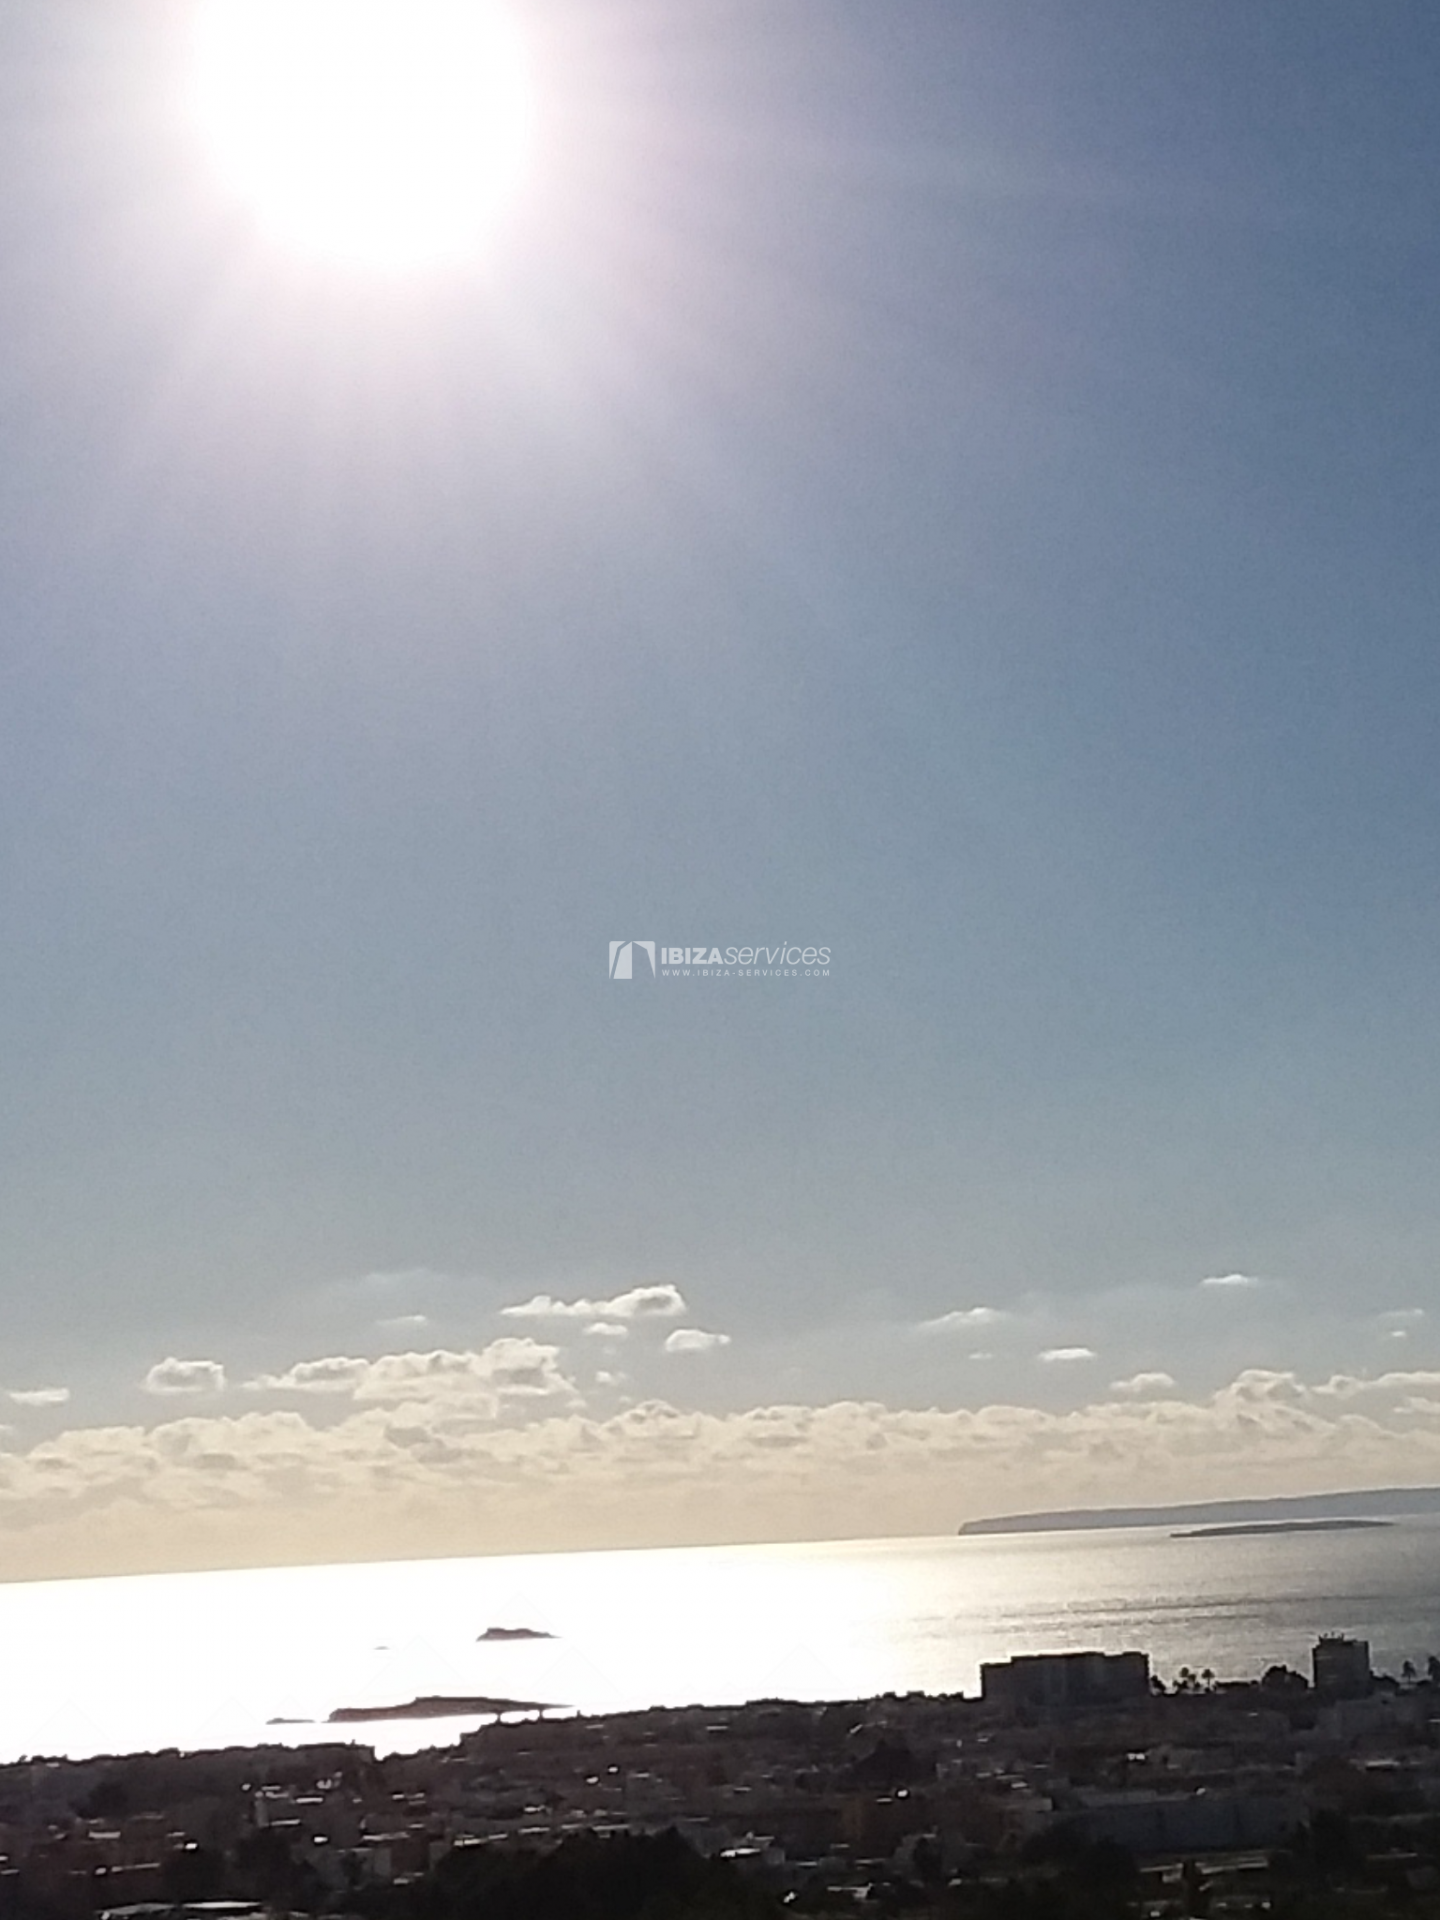 Buy building land Ibiza sea view with license perspectiva 3